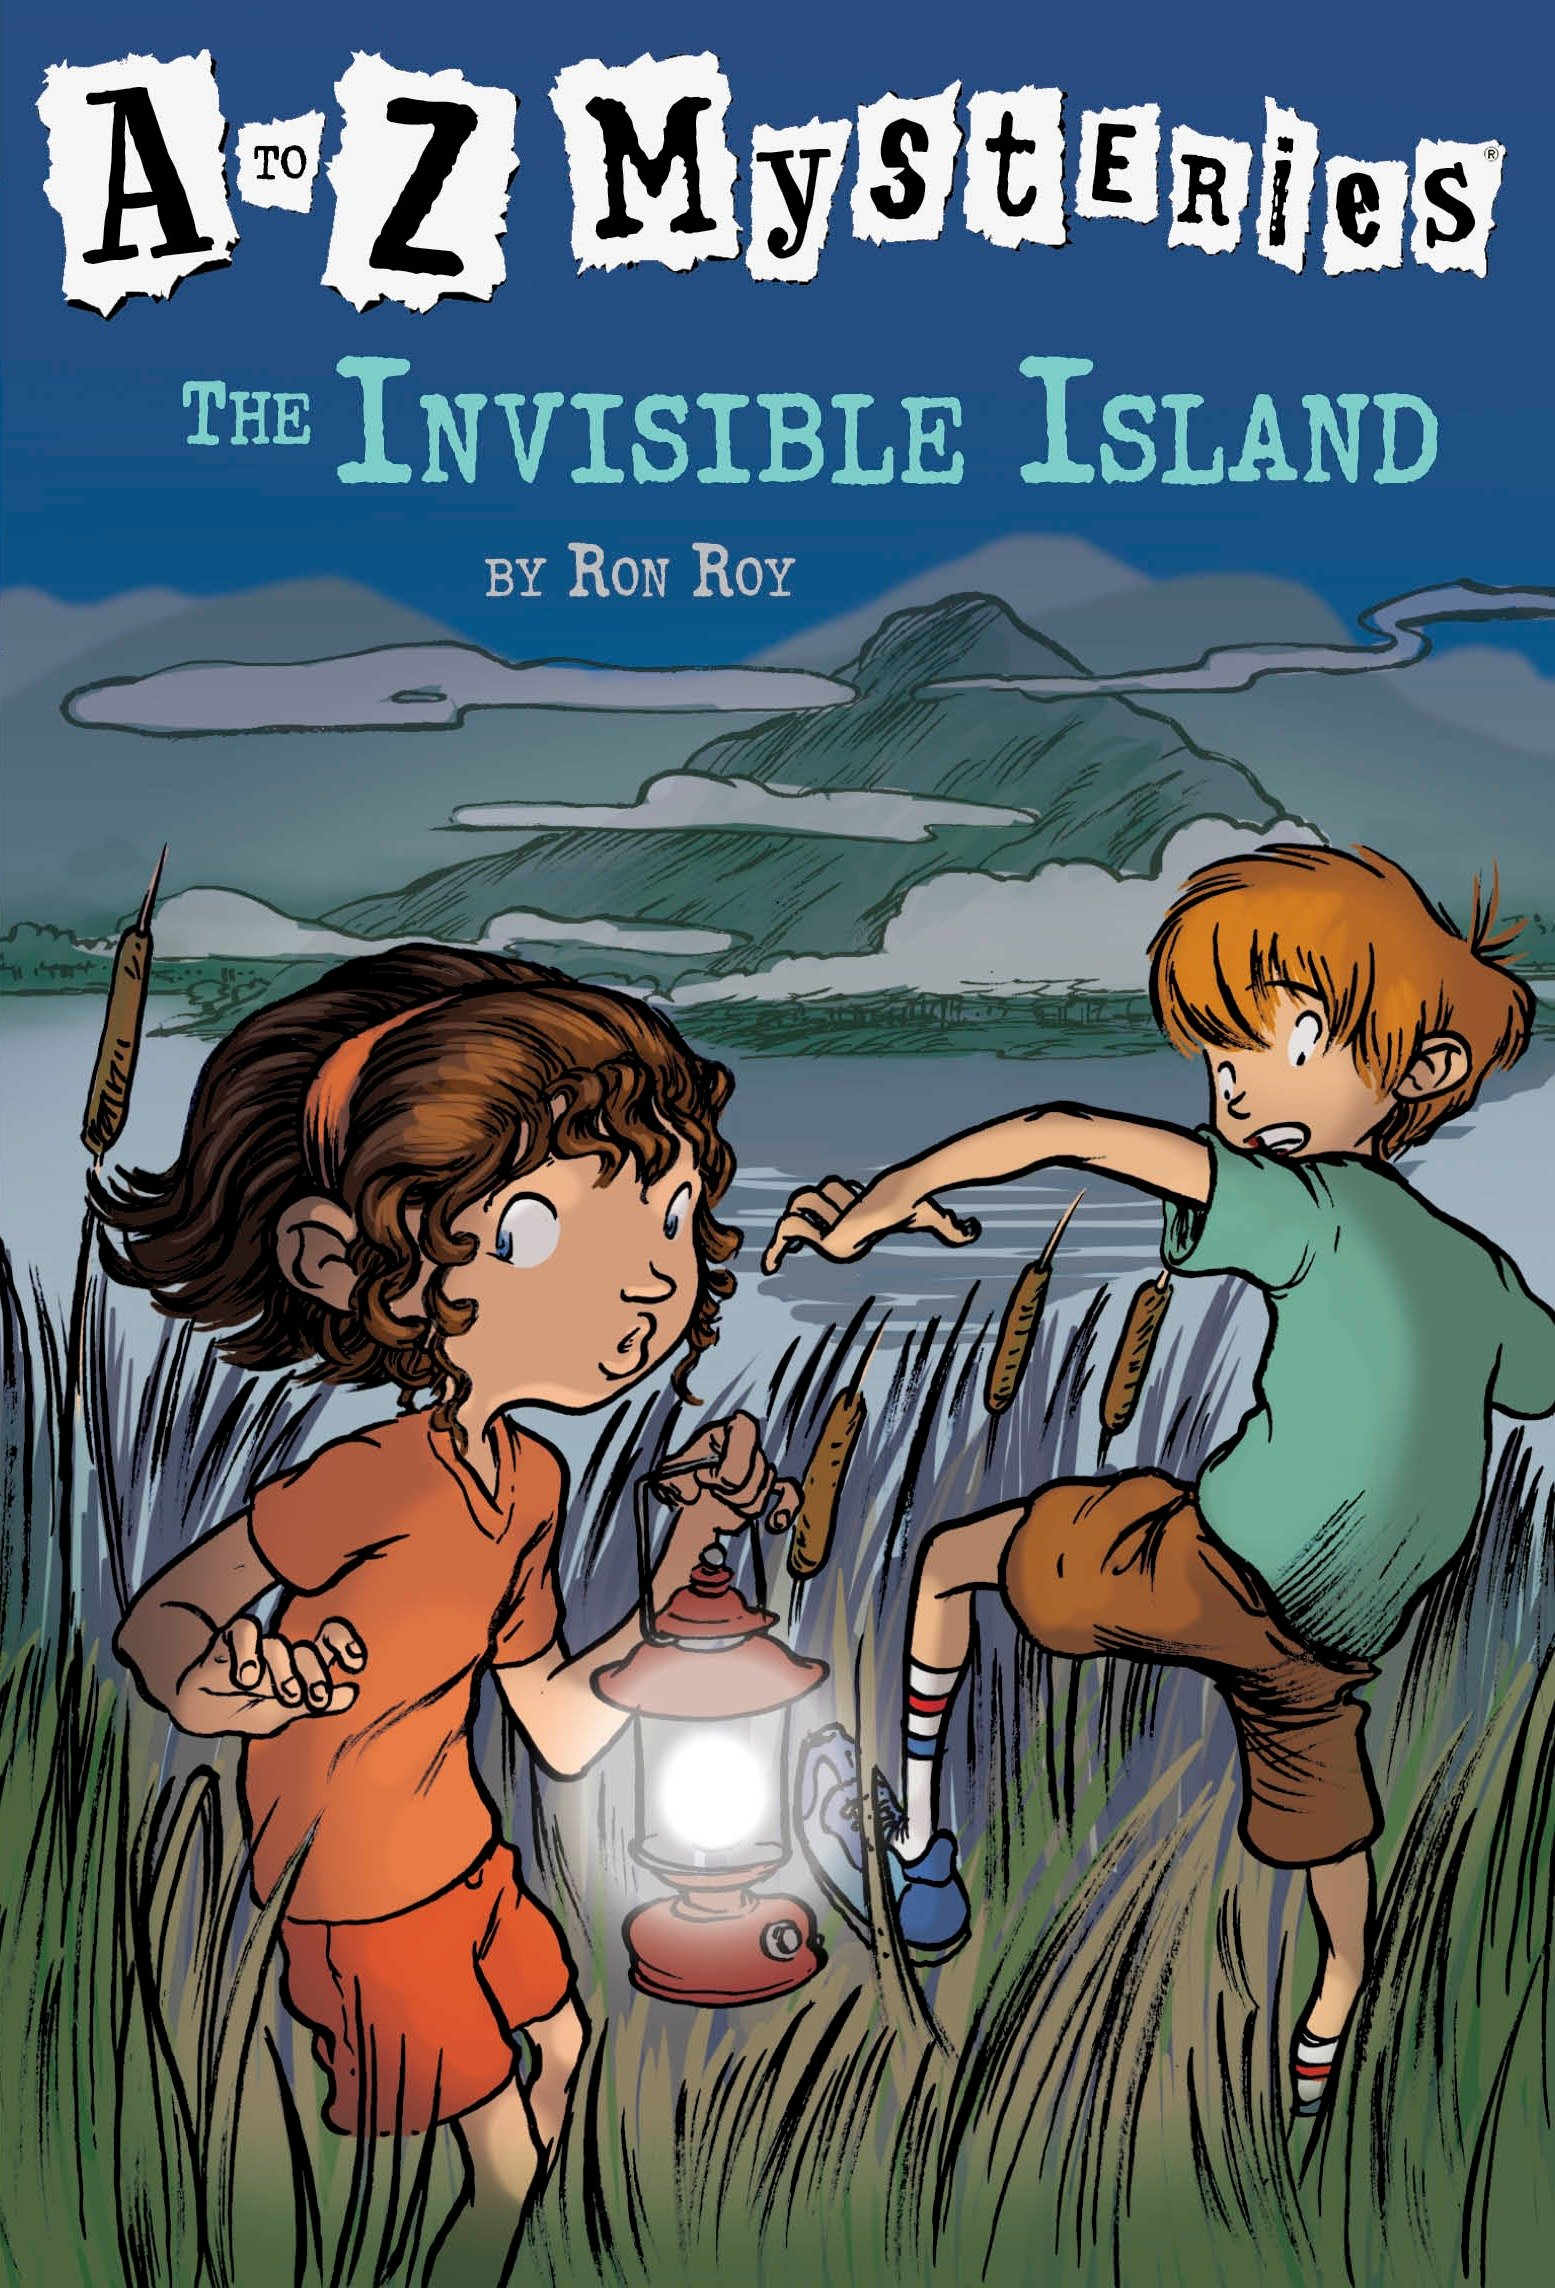 The Invisible Island cover image